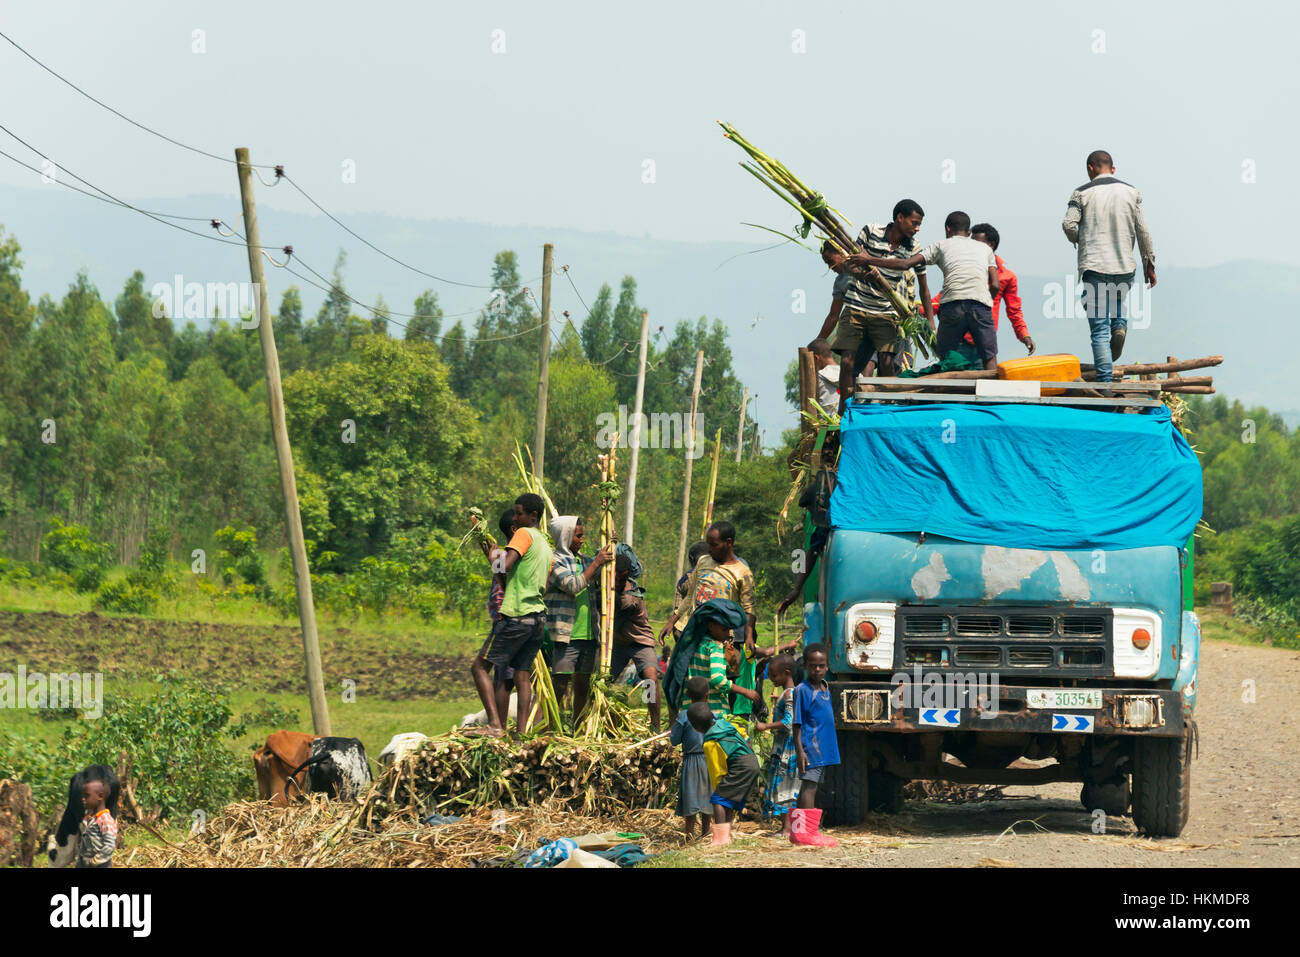 Loading harvested sugarcane onto the truck, Bahir Dar, Ethiopia - Stock Image